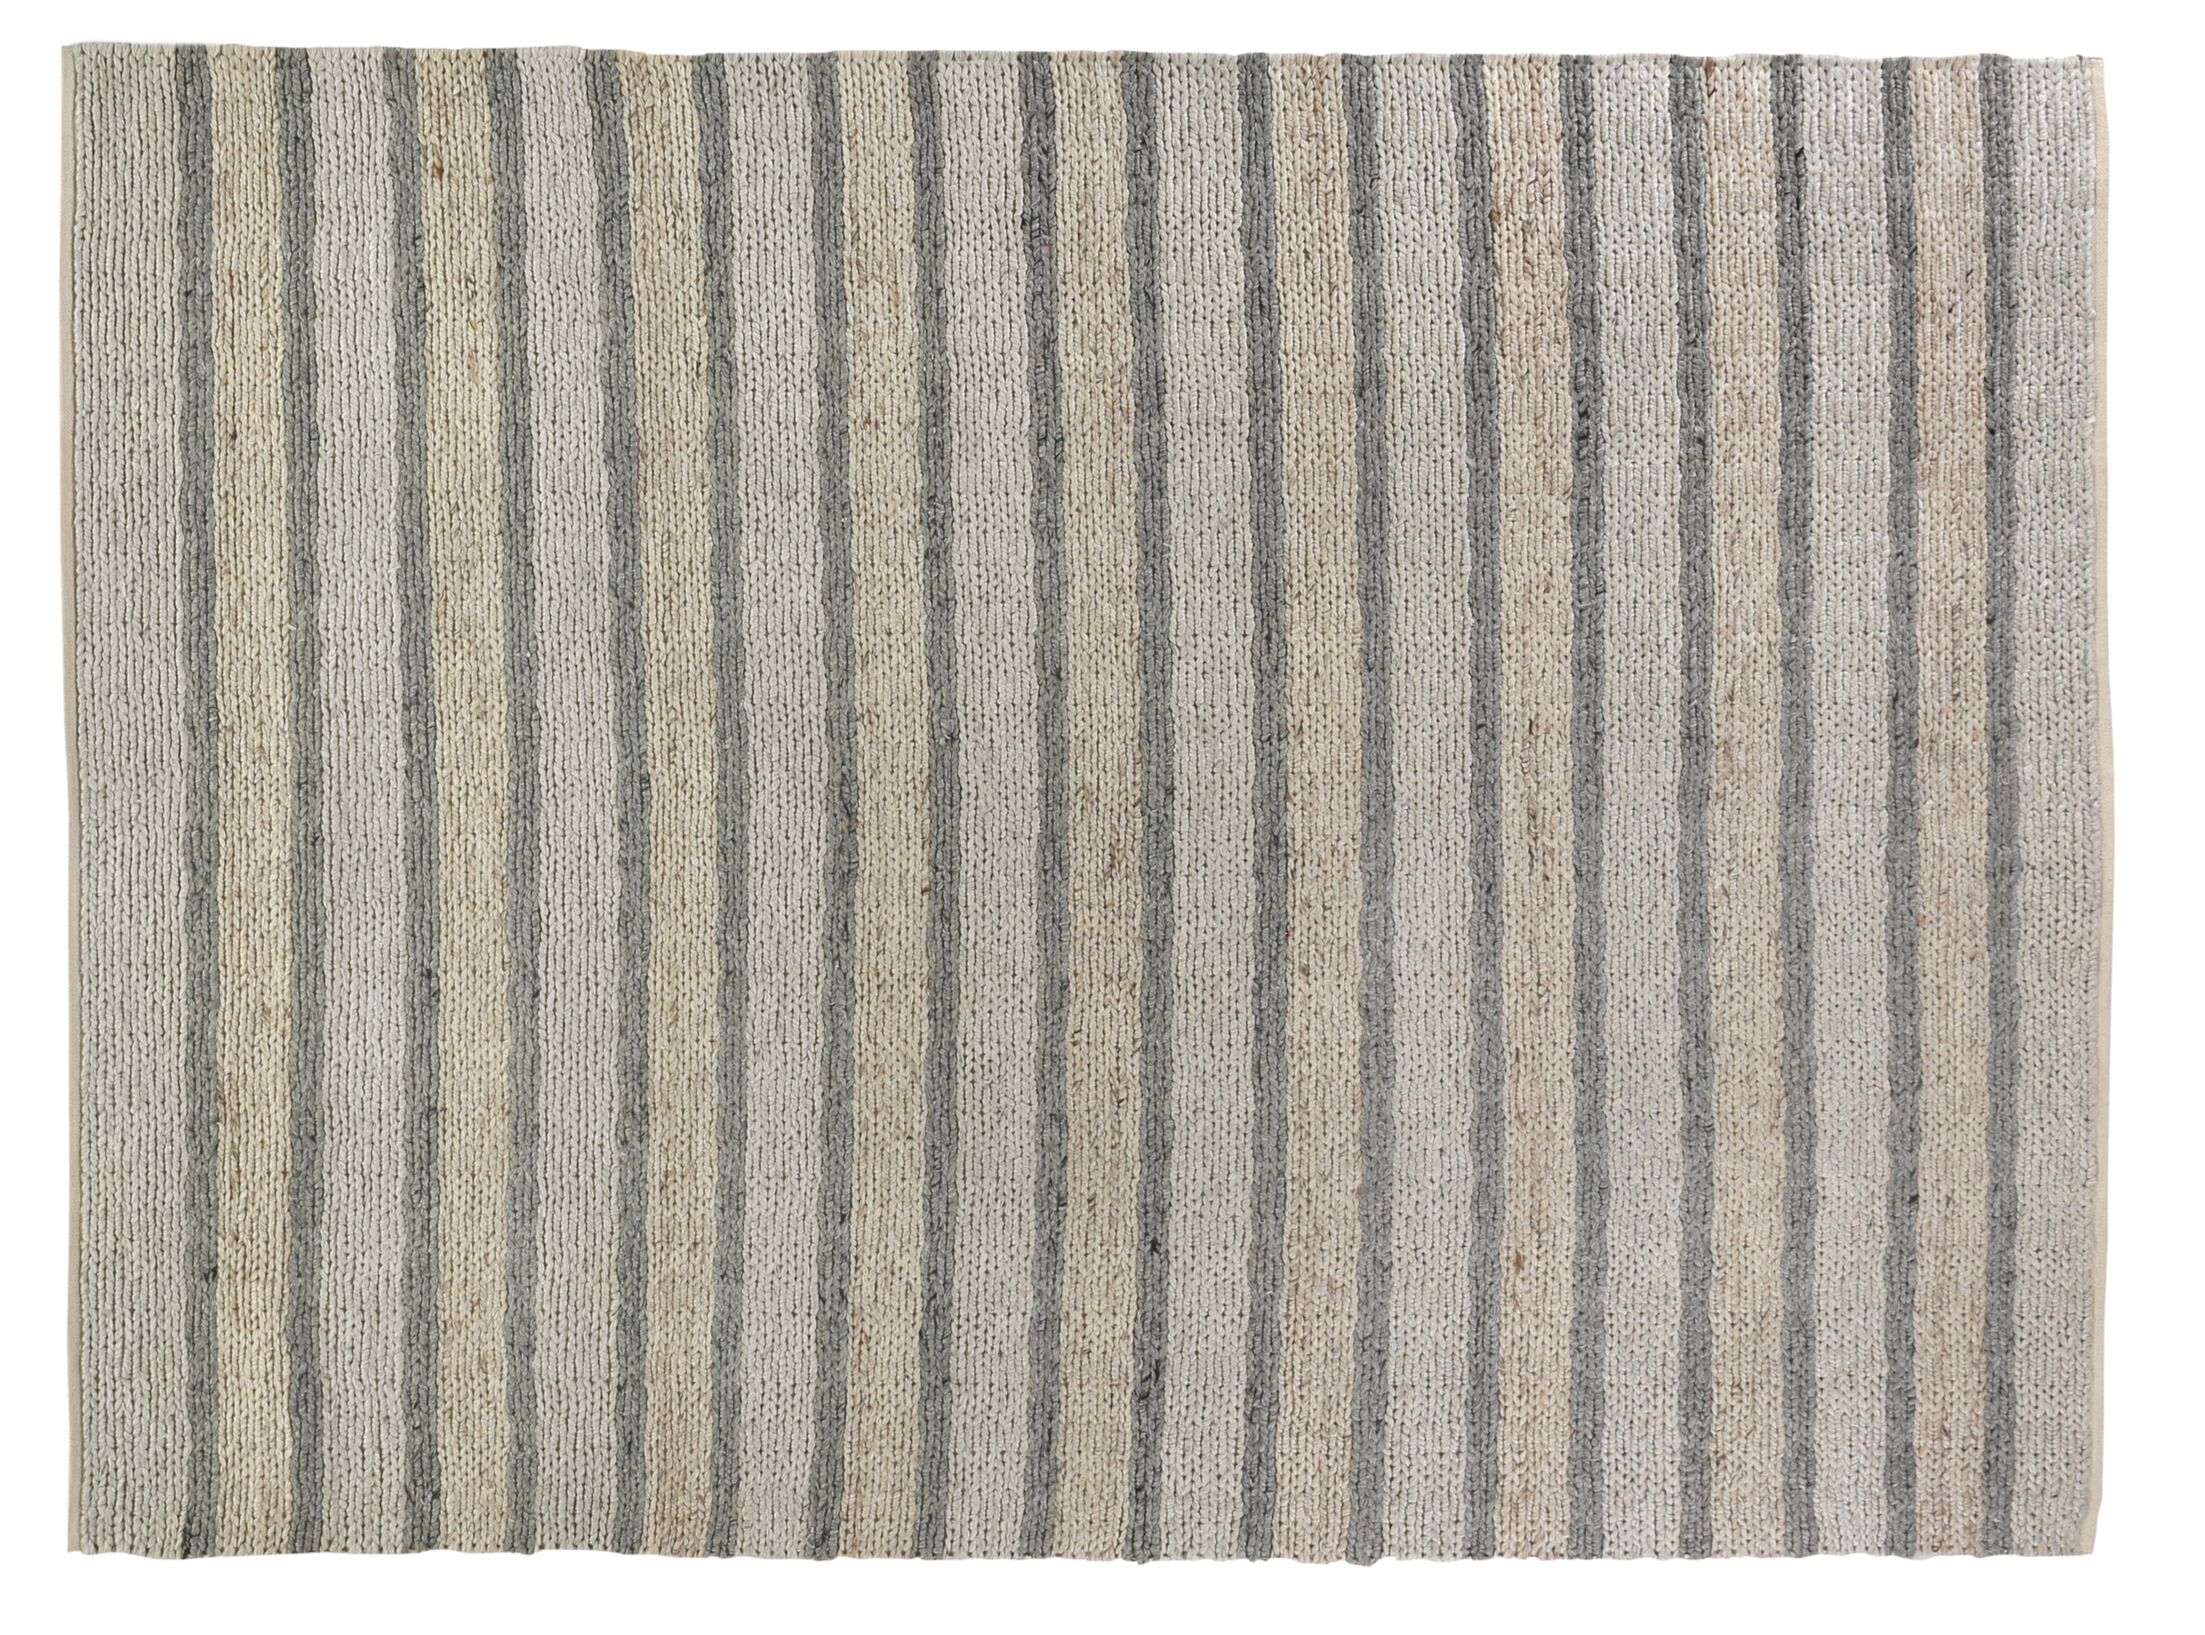 Lauryn Hand-Woven Natural Area Rug Rug Size: Rectangle 8' x 10'